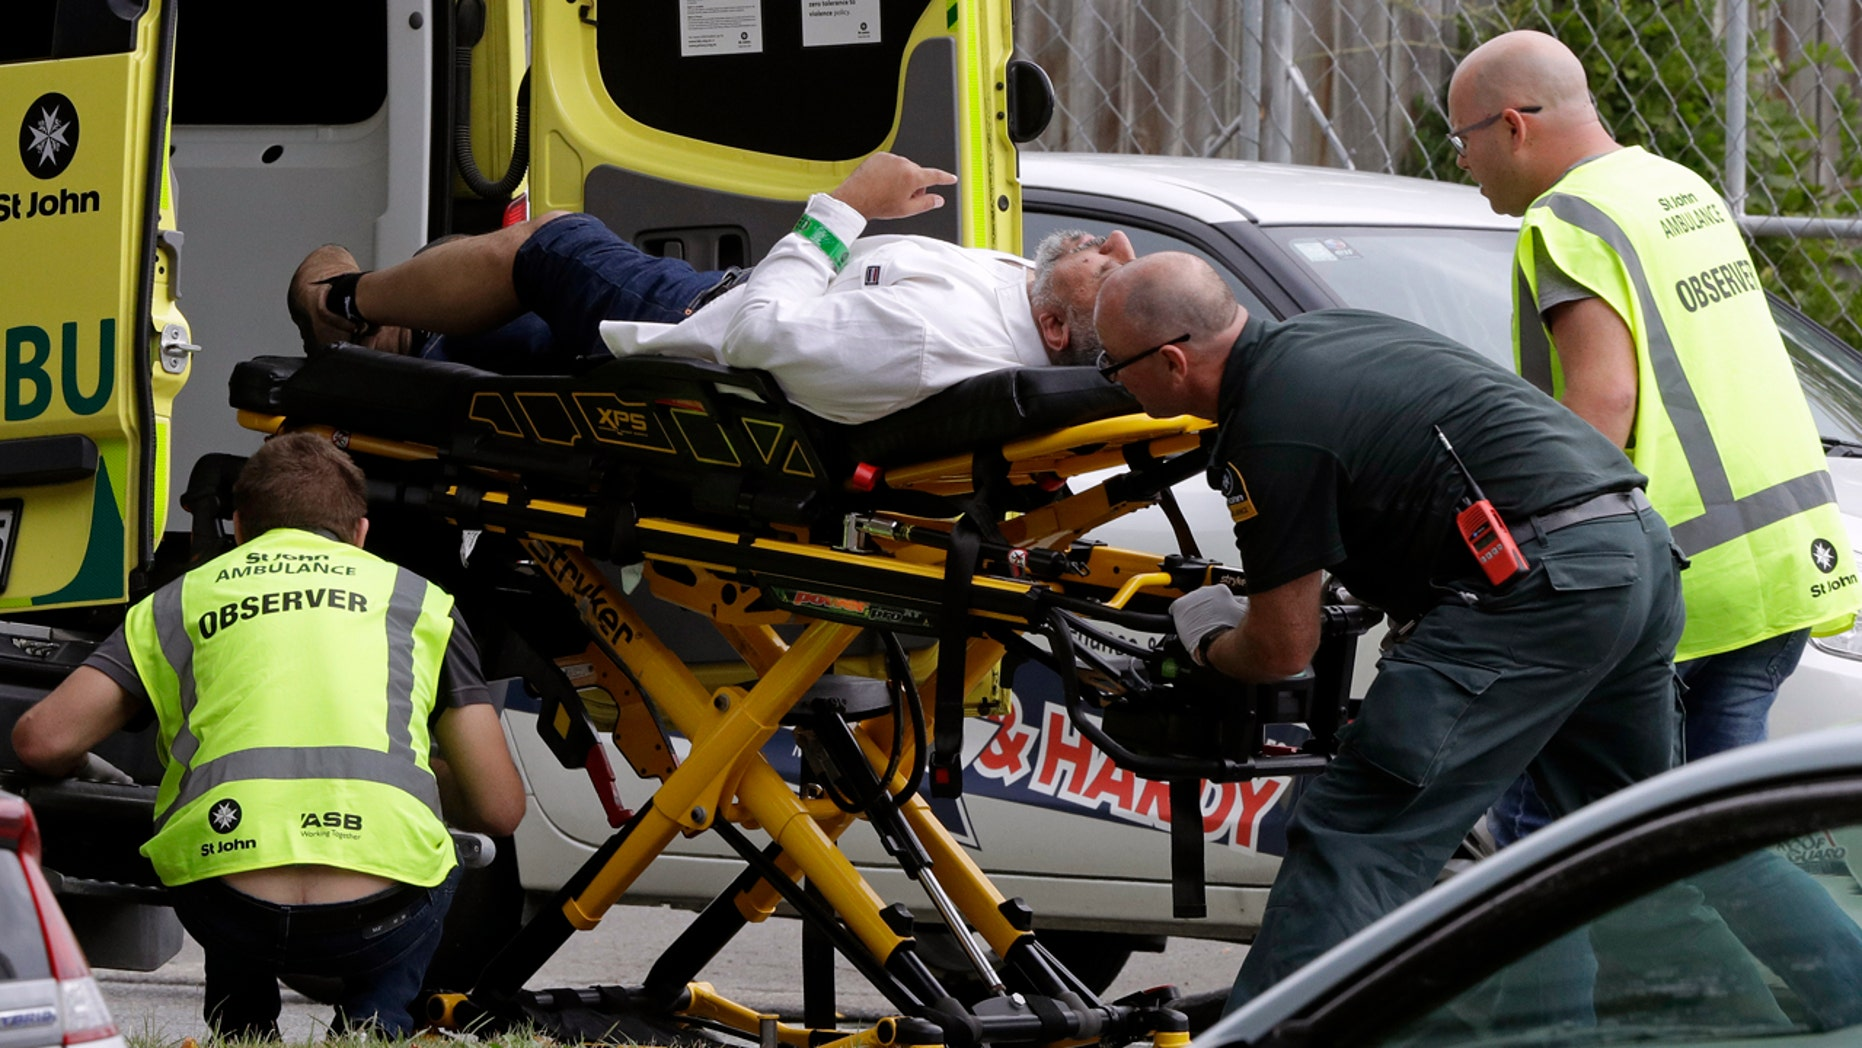 Ambulance staff take a man from outside a mosque in central Christchurch, New Zealand, Friday, March 15, 2019. A witness says many people have been killed in a mass shooting at a mosque in the New Zealand city of Christchurch. (Associated Press)